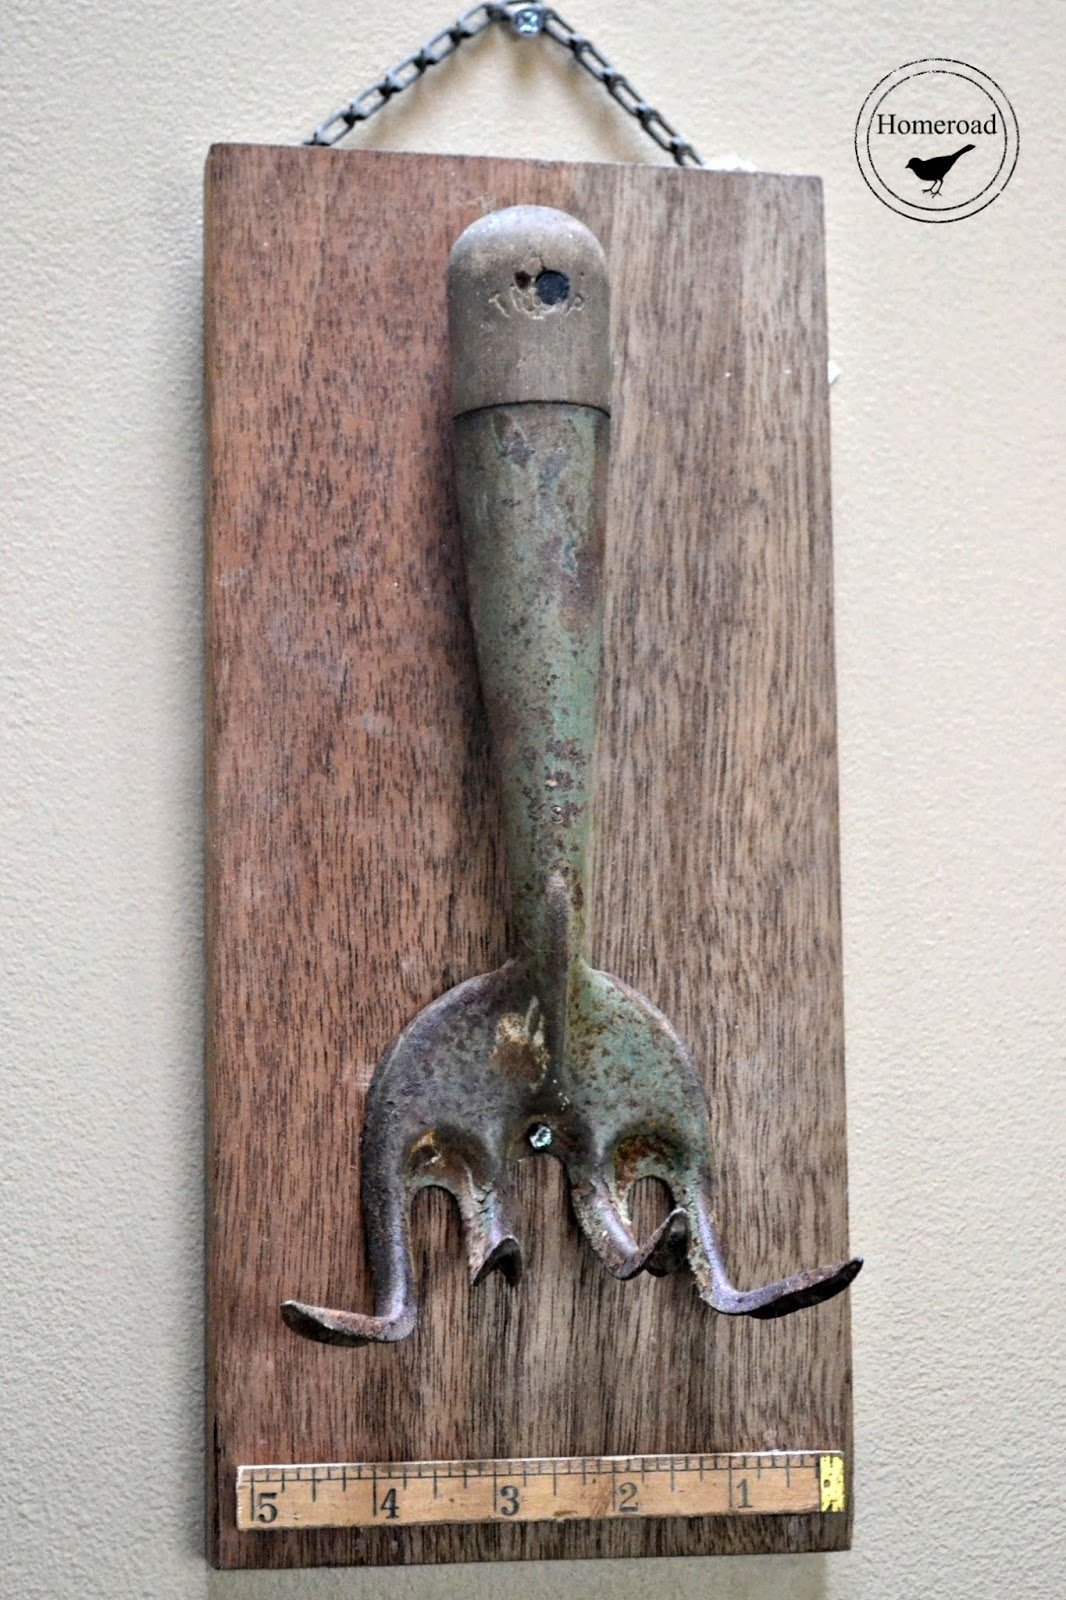 Repurposed-vintage-garden-tools www.homeroad.net